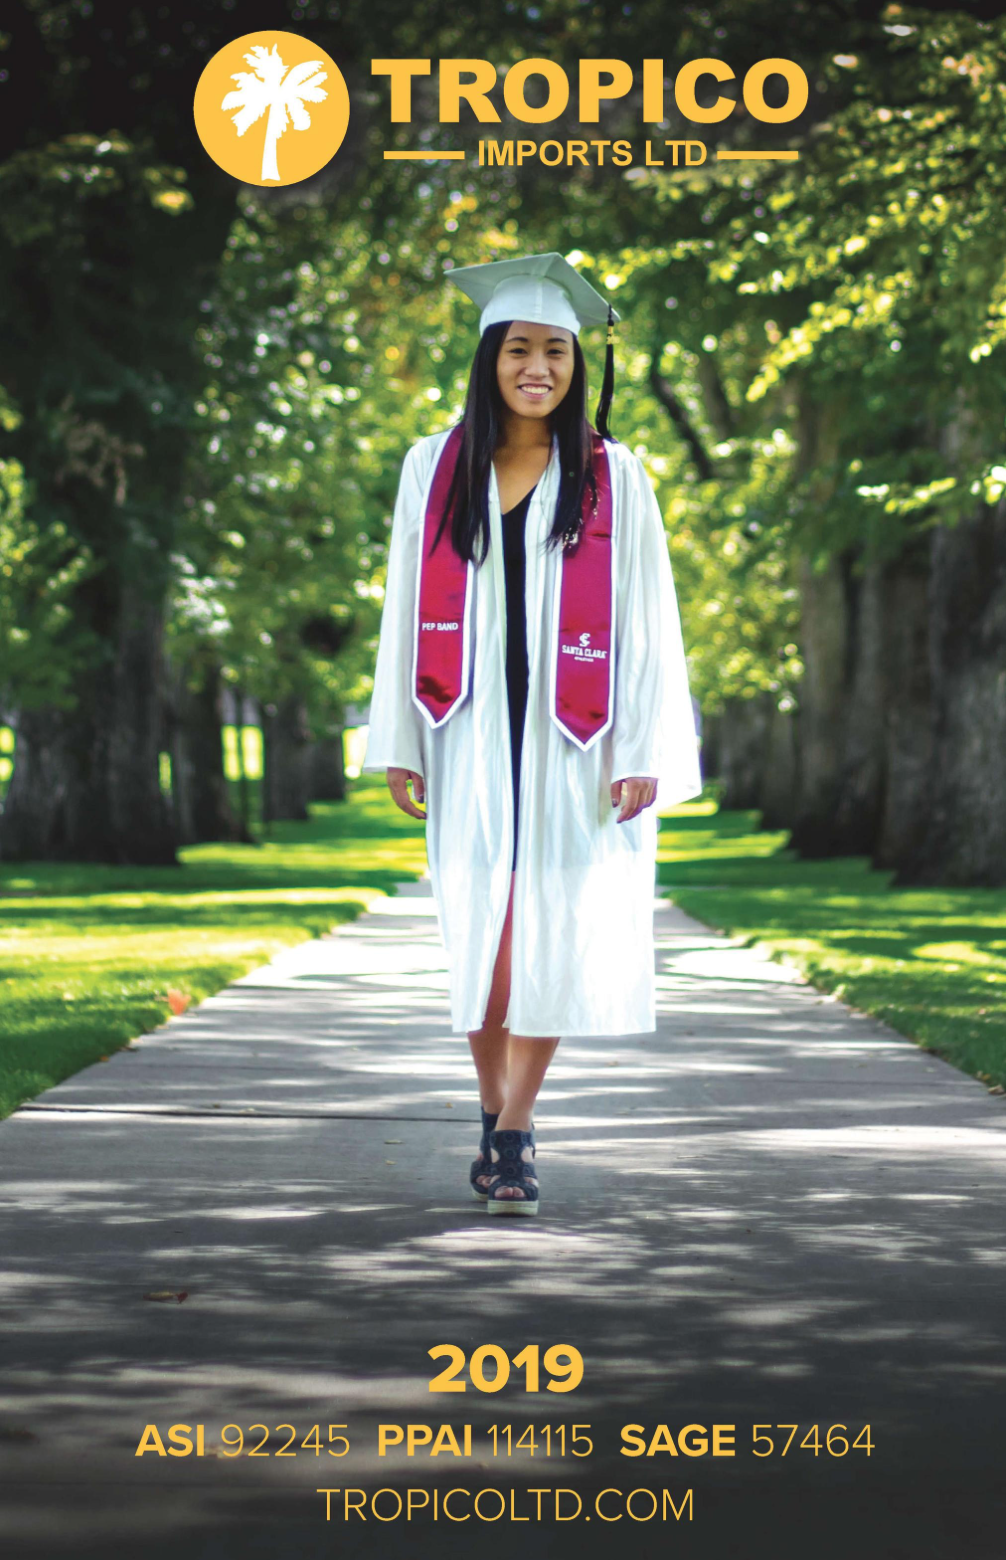 Thumbnail of 2019 Catalog, Graduate in Cap, Gown, Tassel, and Embroidered Stole